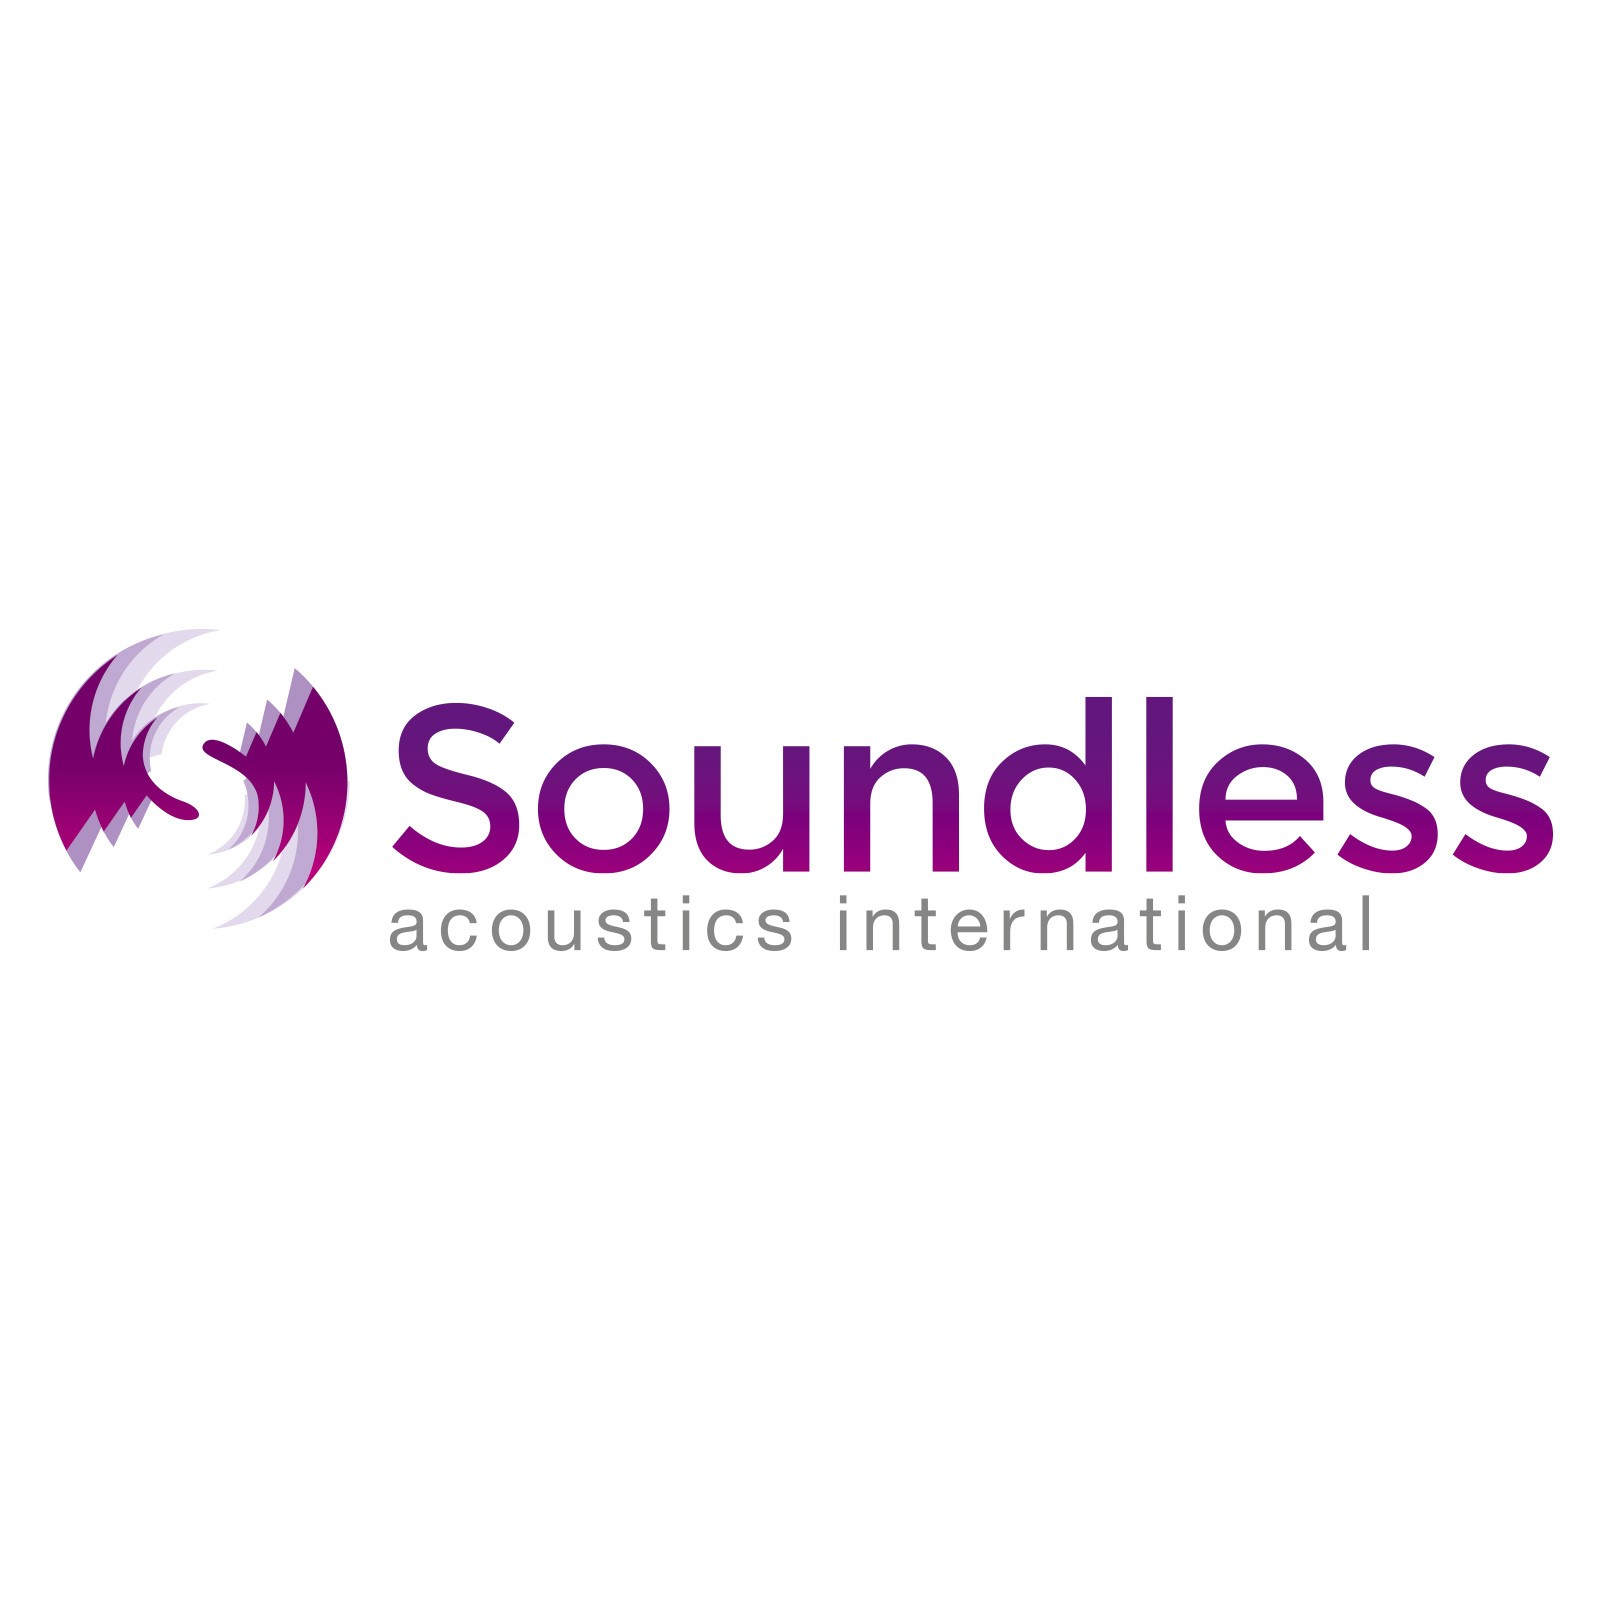 Logo Soundless acoustics Intl.